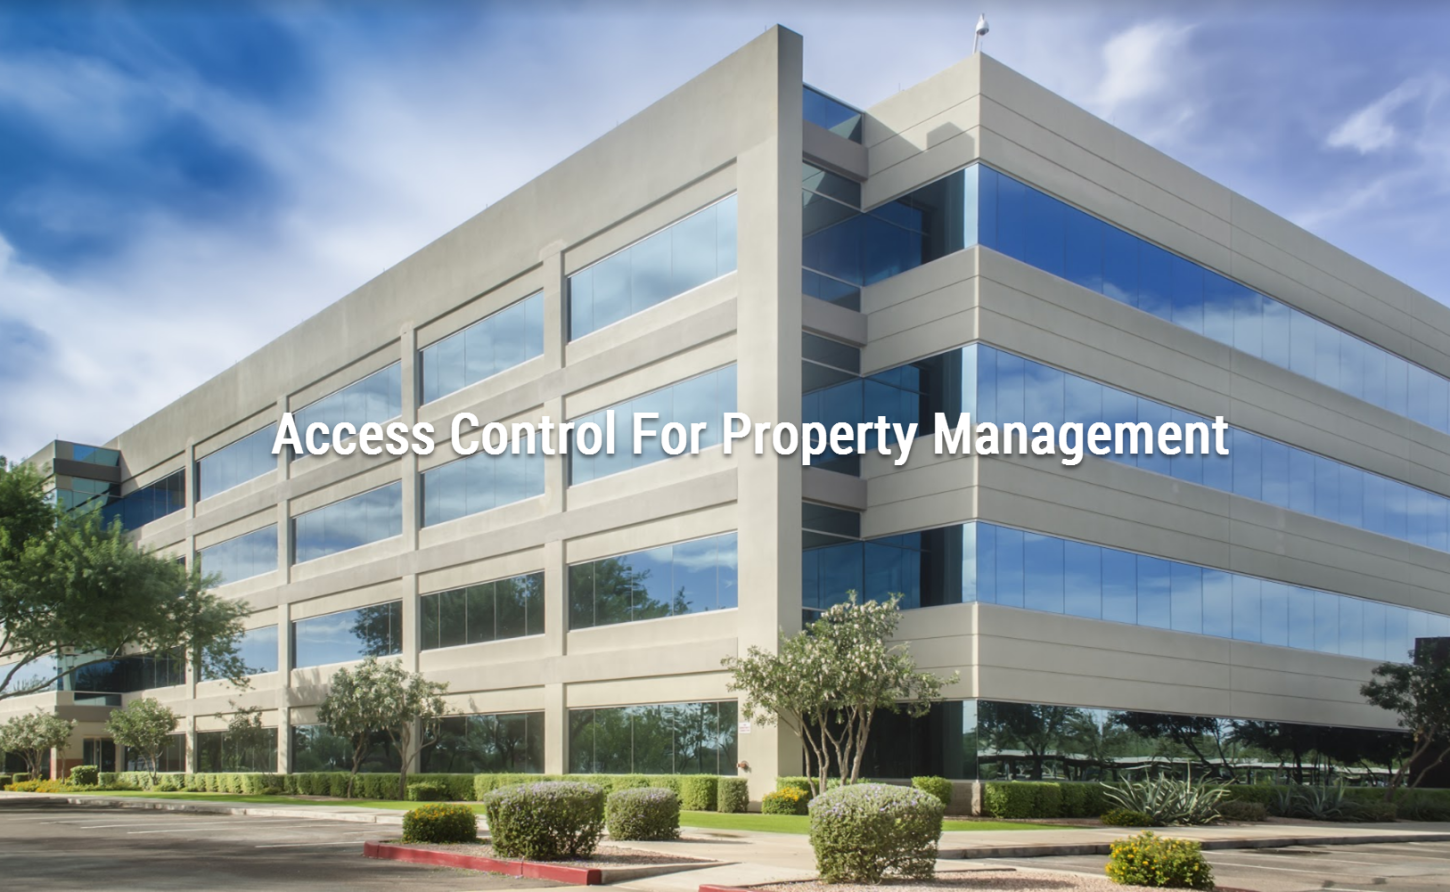 Property management and access Control